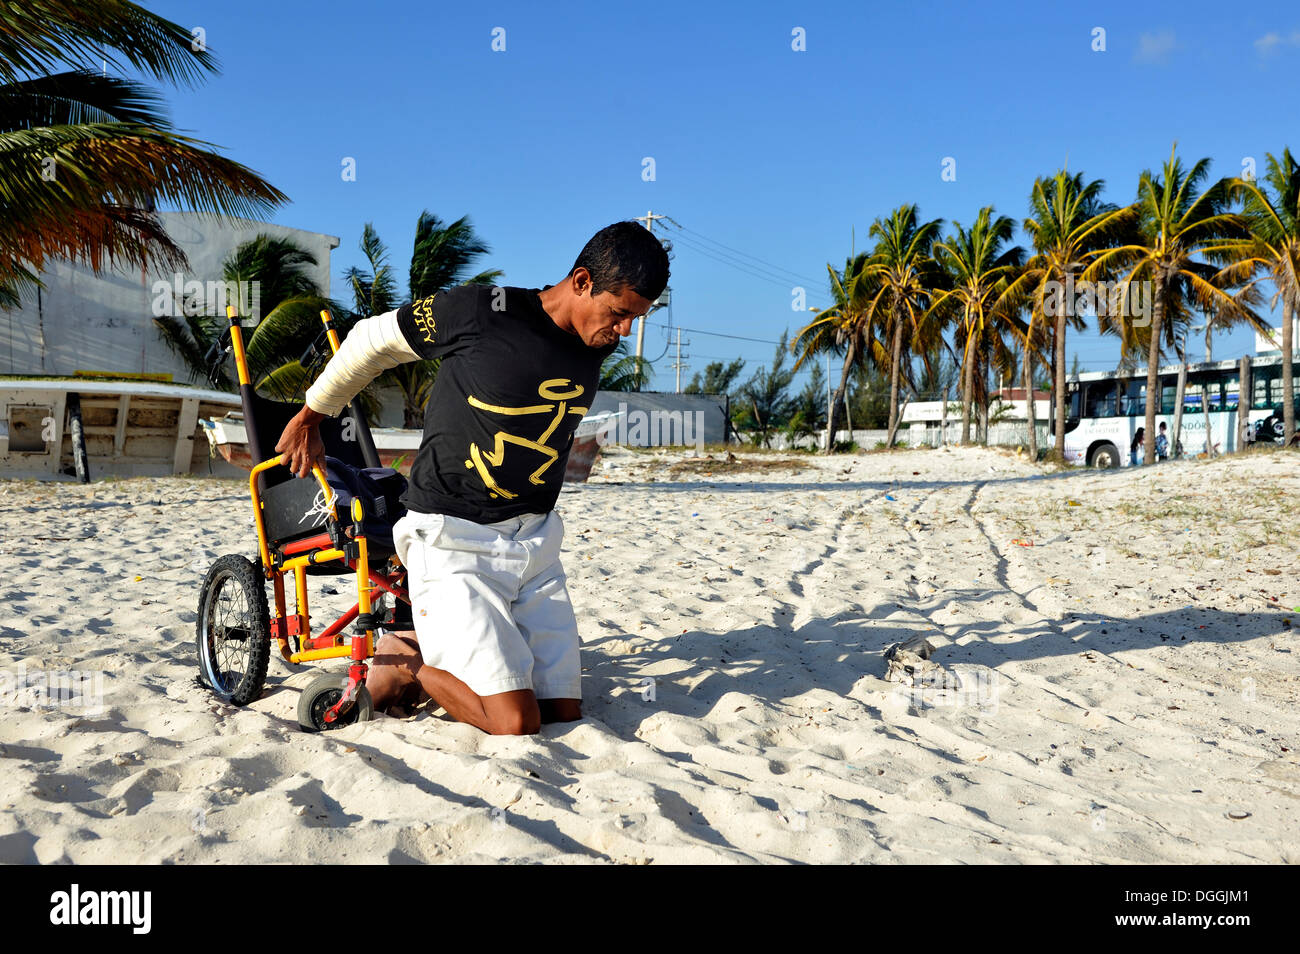 Lobster fisherman suffering from the bends after a diving accident leaving his wheelchair to do physiotherapy exercises to fight - Stock Image